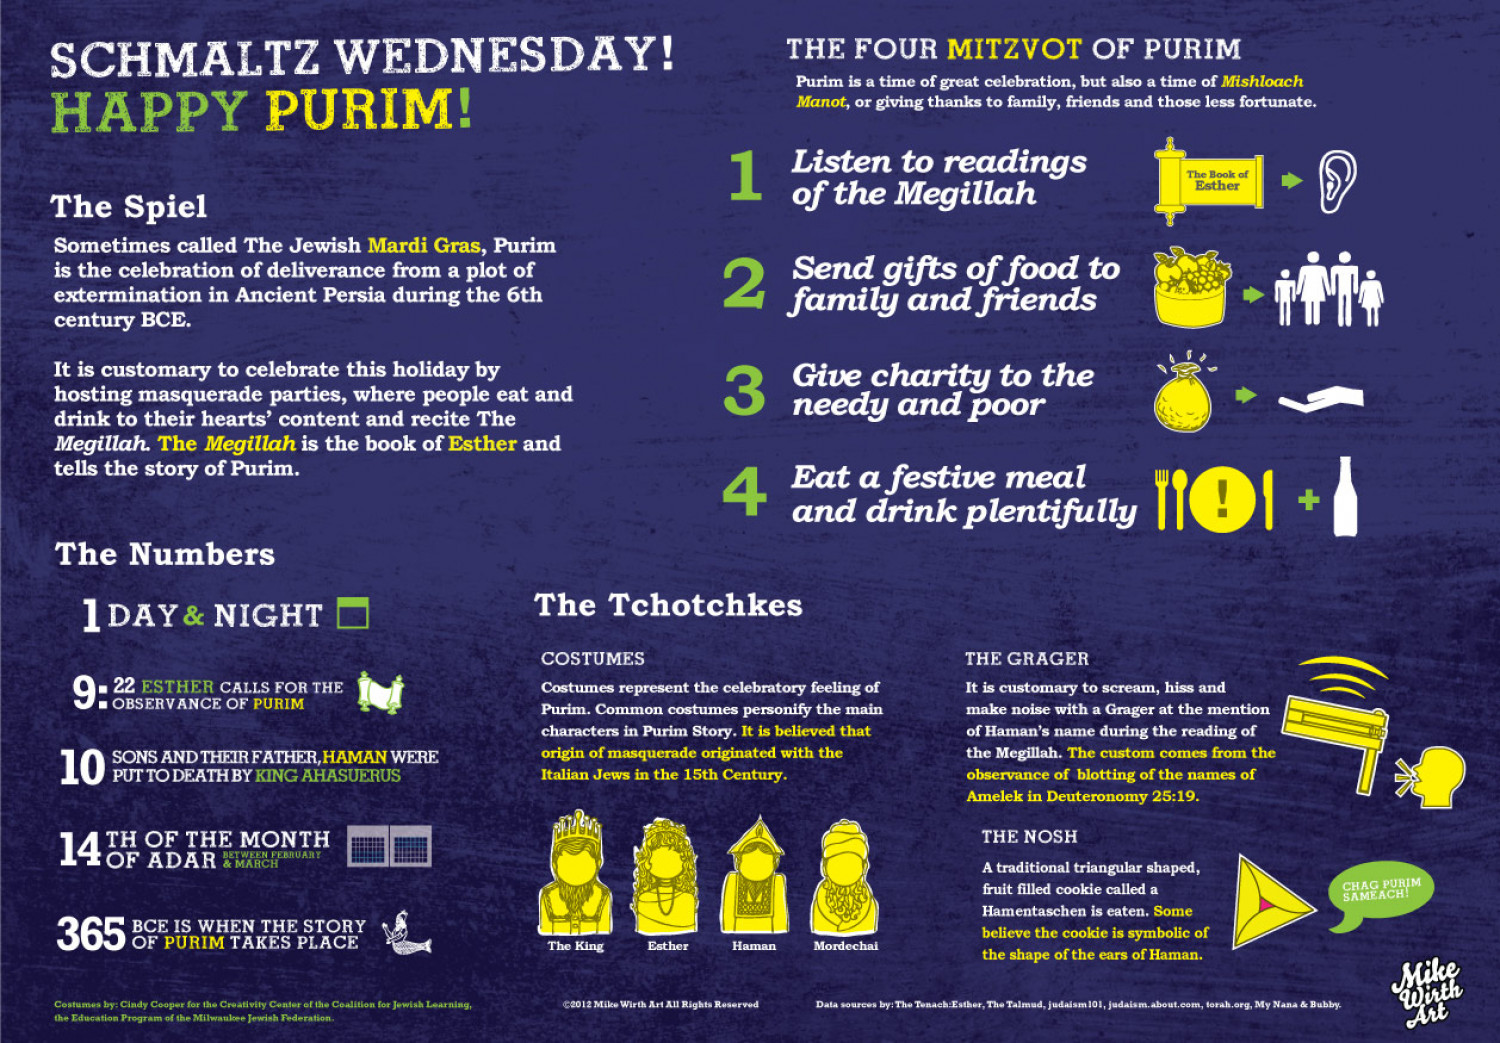 Schmaltz Wednesday: Purim Explained Infographic